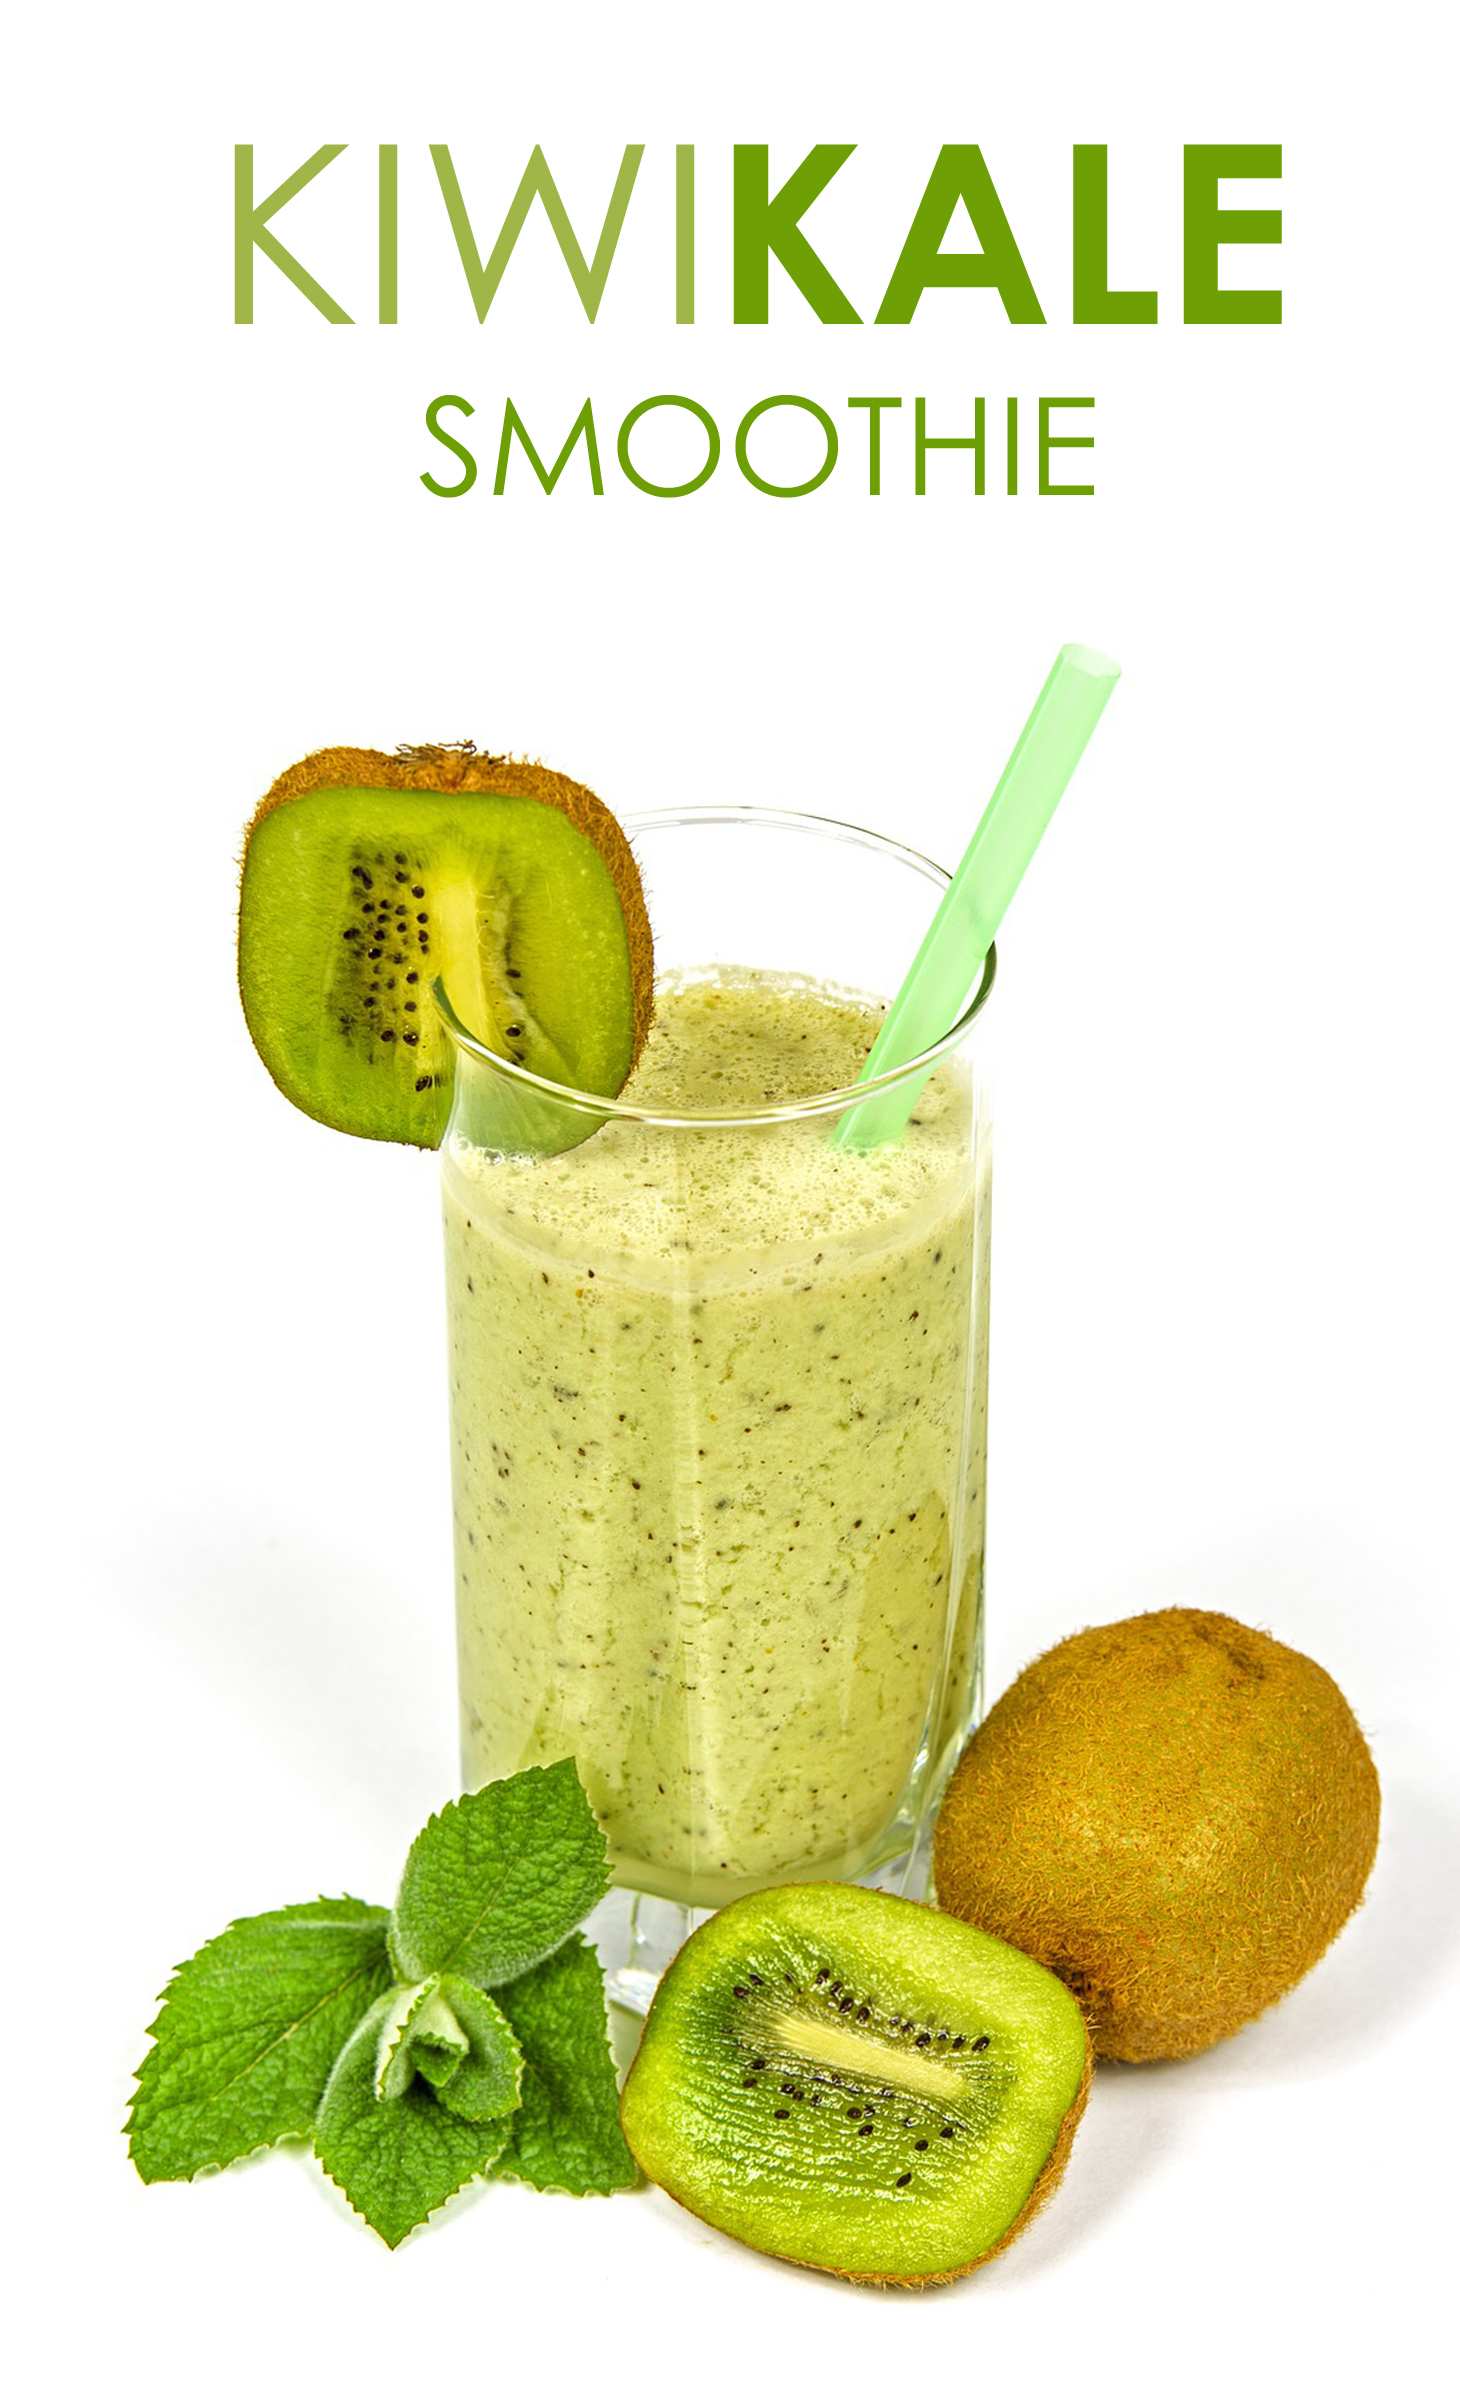 Kiwi Kale Smoothie Supports Weight Loss Is Perfect To Get Ready For The Summer Body You All Know What I Mean After A Long Winter And Bundled Clothes